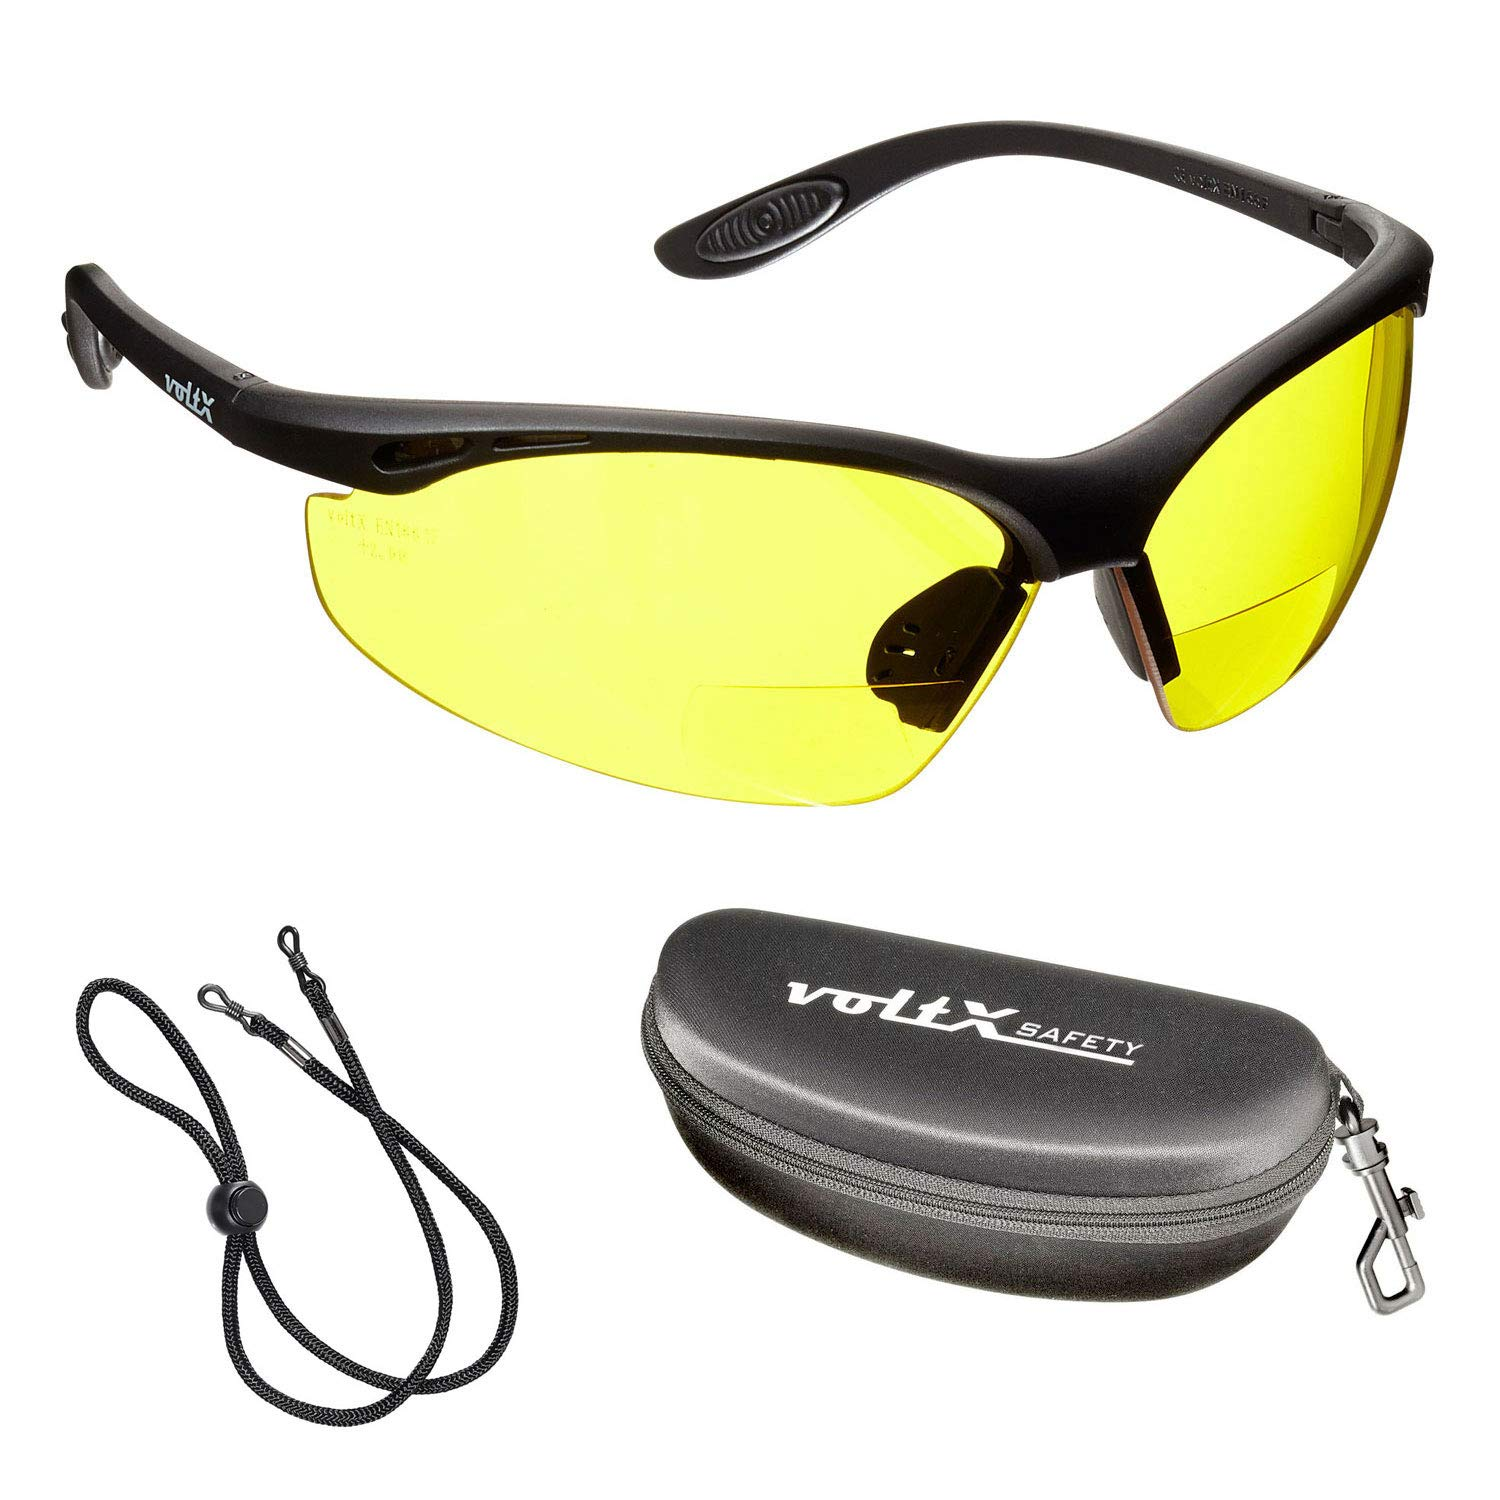 voltX 'CONSTRUCTOR' BIFOCAL Reading Safety Glasses (YELLOW +1.5 Dioptre) CE EN166F certified/Cycling Sports Glasses includes safety cord + Rigid Clamshell Safety Case StraightLines Others